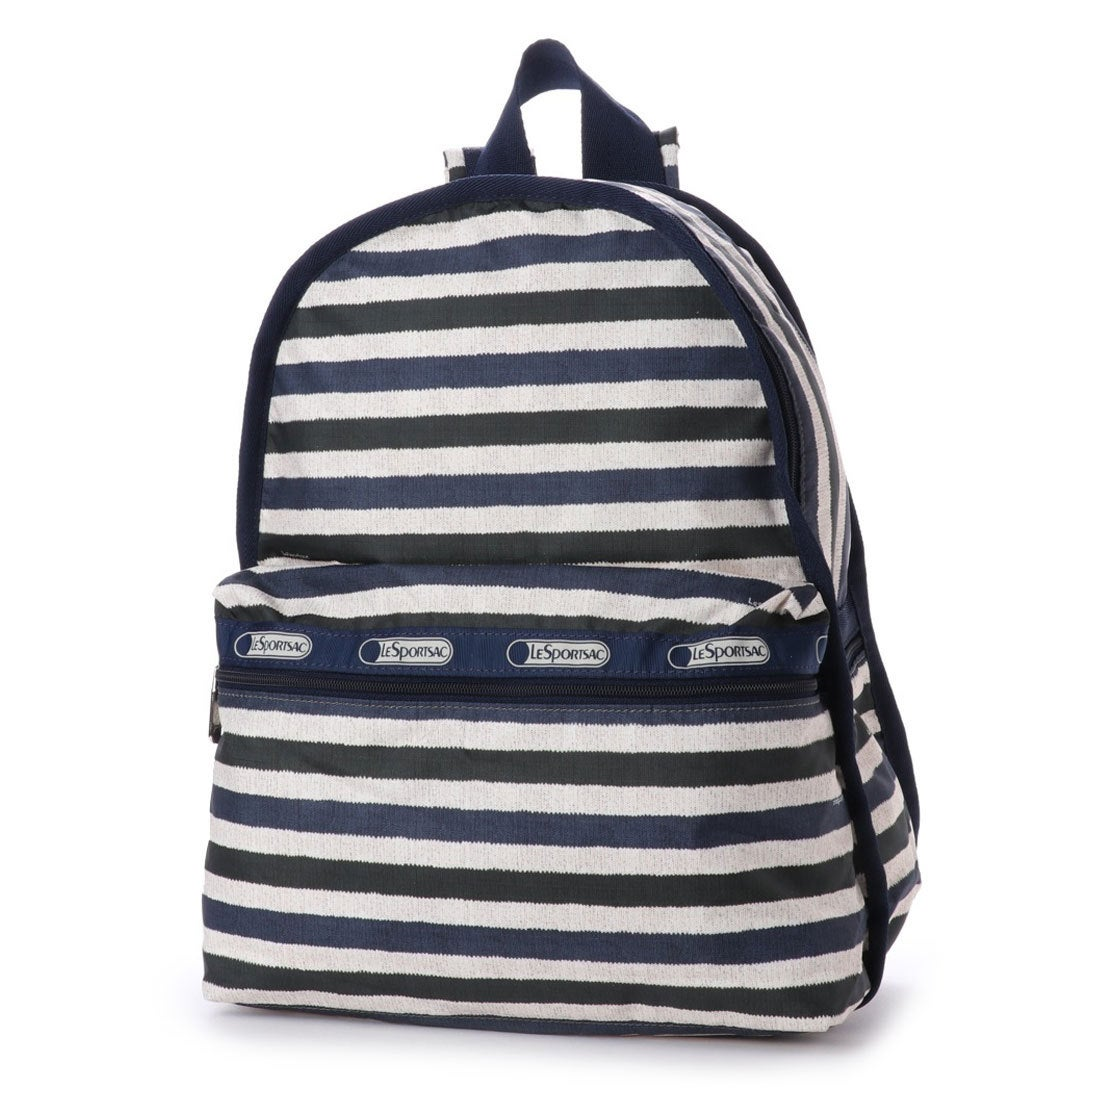 【SALE 29%OFF】レスポートサック LeSportsac BASIC BACKPACK (COTTON STRIPE) レディース